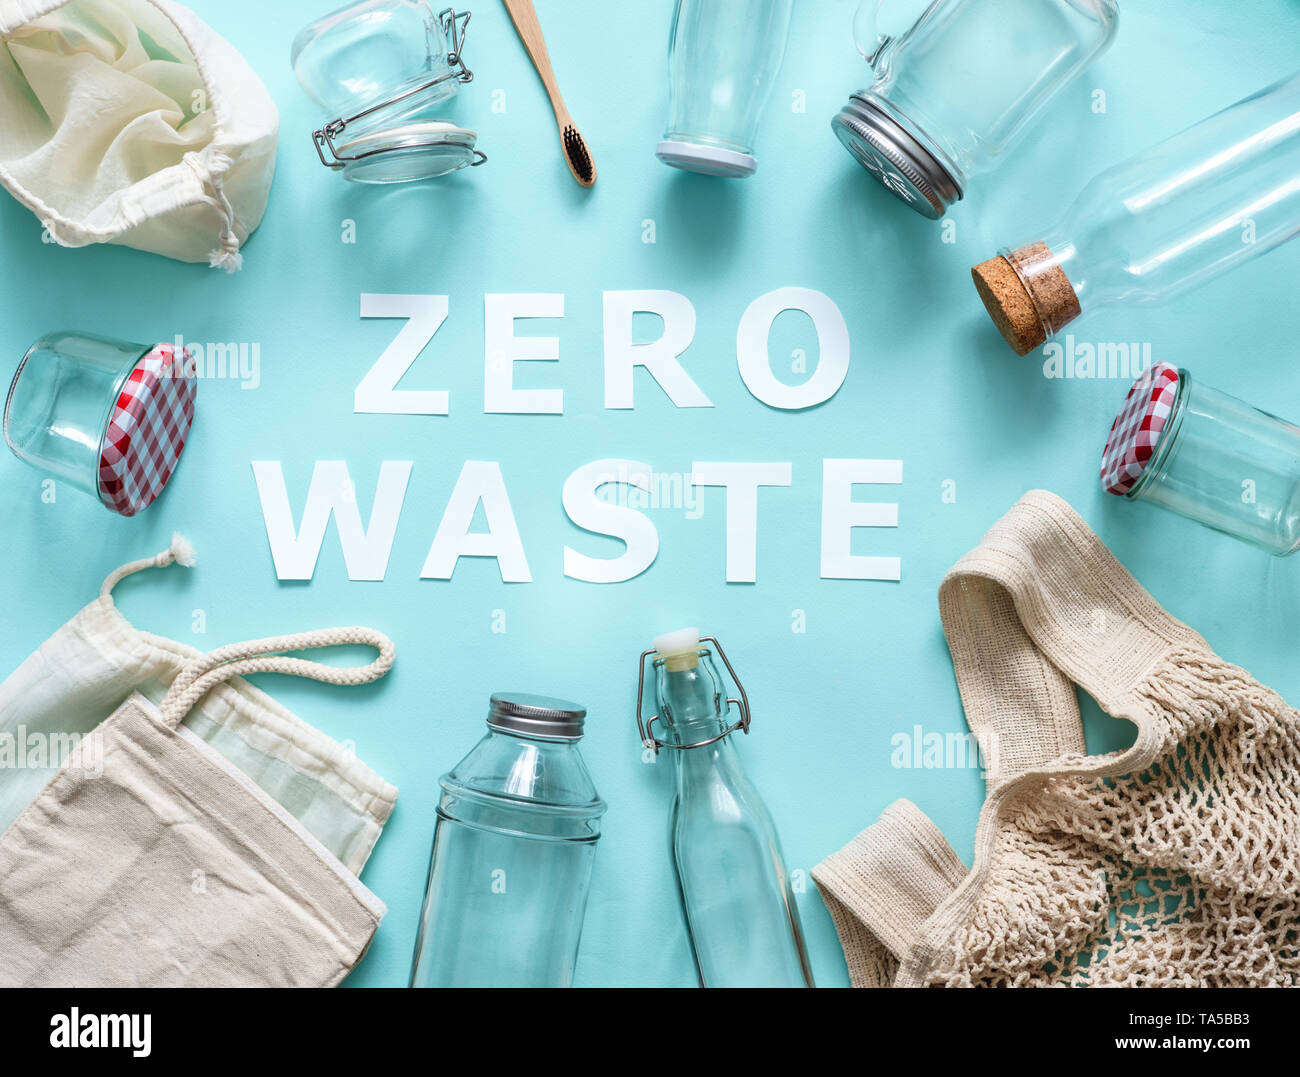 Zero waste concept. Textile eco bags, glass jars and bamboo toothbrush on blue background with Zero Waste white paper text in center. Eco friendly and - Stock Image